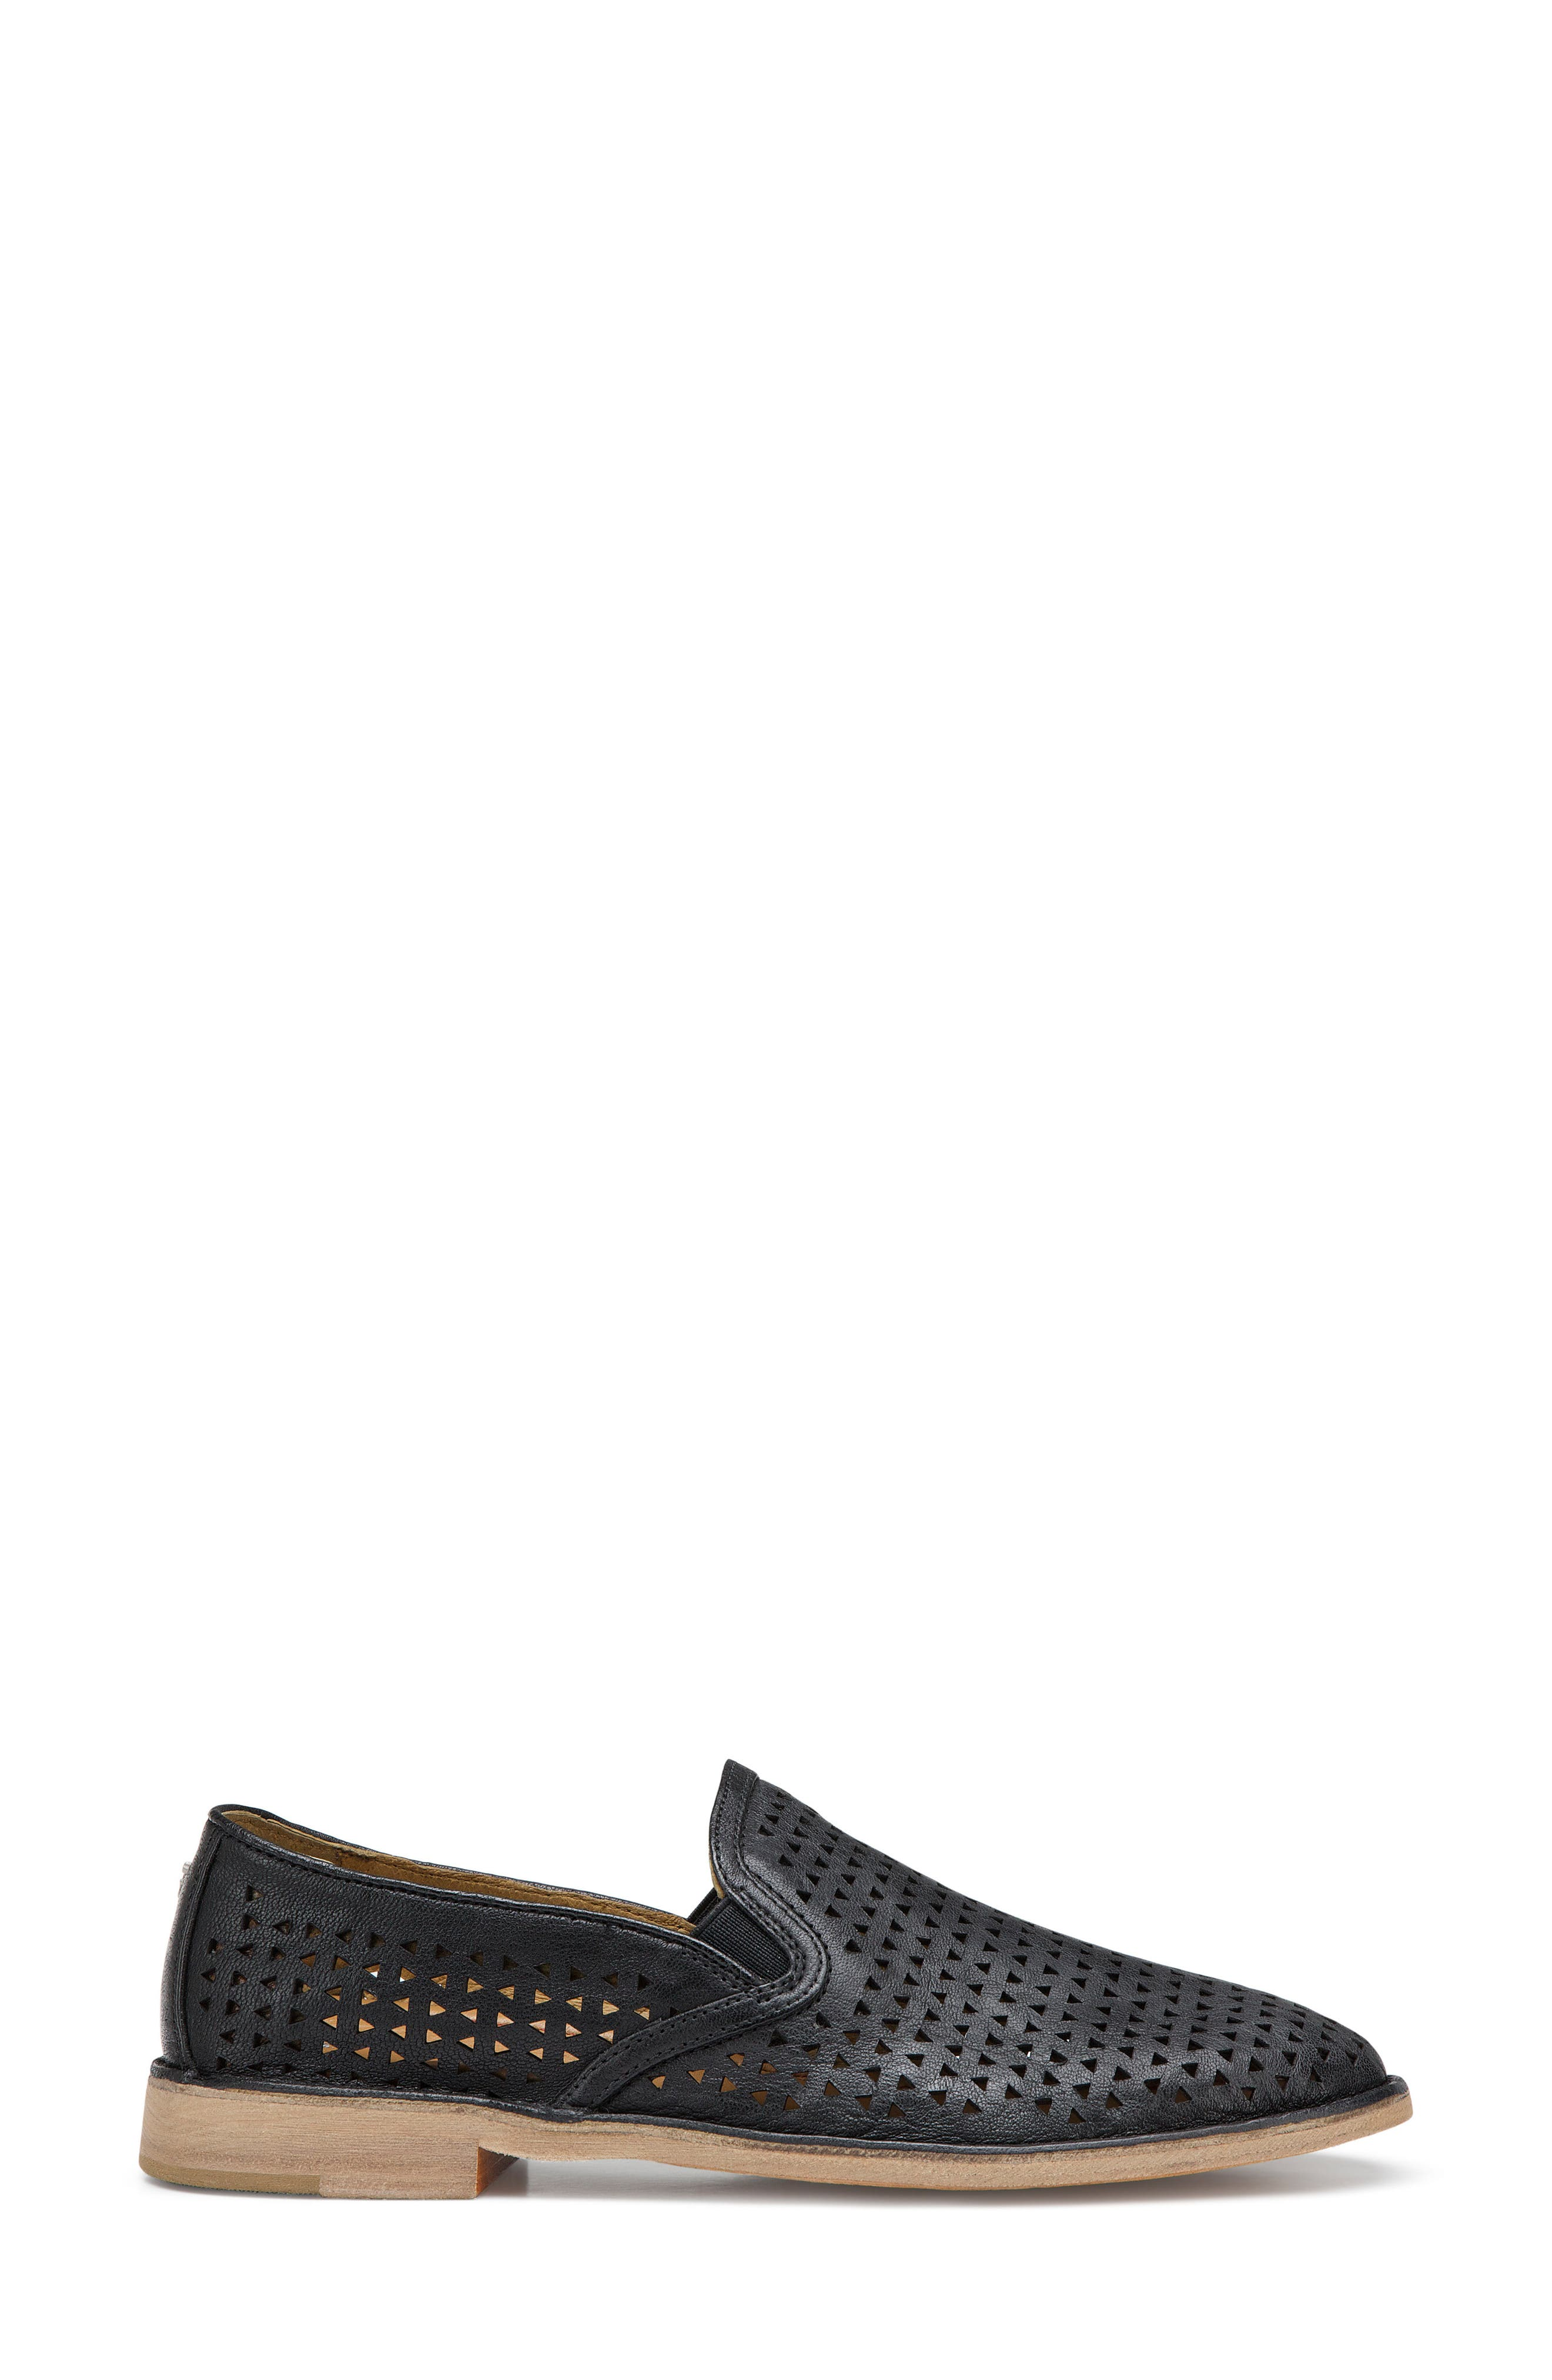 Ali Perforated Loafer,                             Alternate thumbnail 3, color,                             BLACK LEATHER